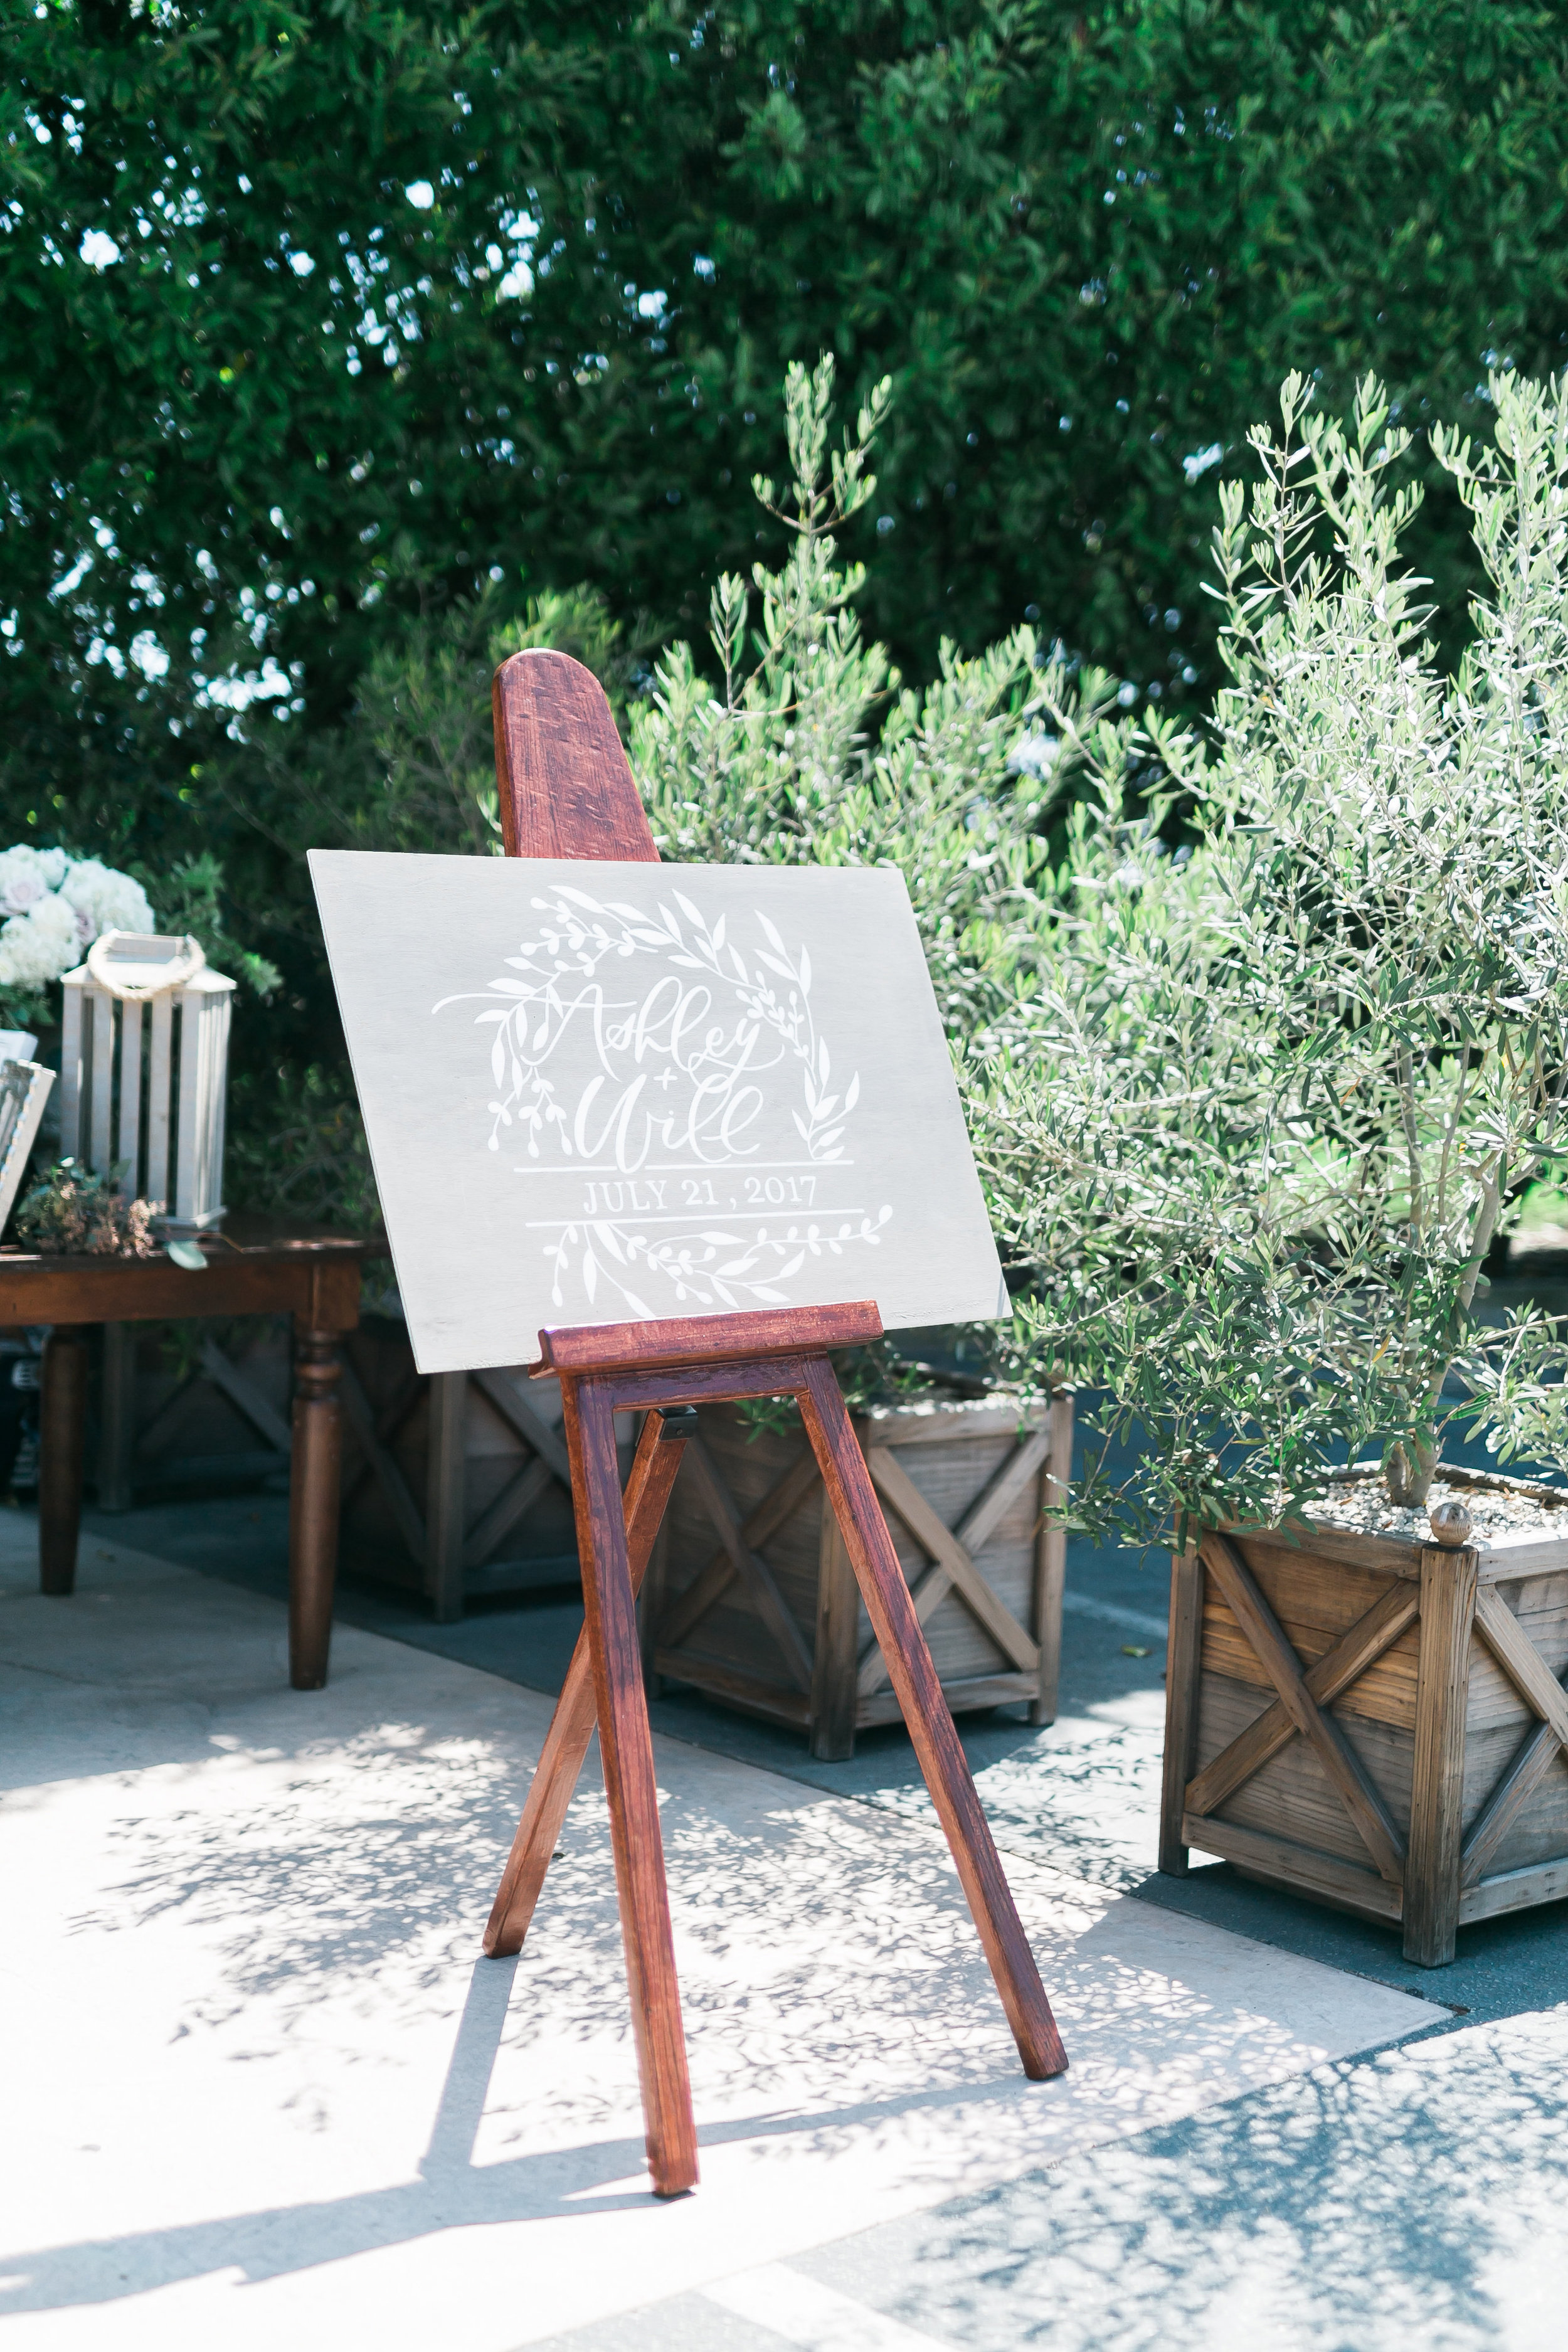 Wedding Welcome Sign.   CREDITS:  Destination Wedding Planner  ANDREA EPPOLITO EVENTS  · Images by  J.ANNE P  HOTOGRAPHY  · Video  HOO FILMS  · Venue Ritz Carlton Bacara Santa Barbara ·Gown  MONIQUE LHULLIER ·Bridesmaids Dresses  SHOW ME YOUR MUMU ·Stationery  SHE PAPERIE ·Bride's Shoes  BADGLEY MISCHKA ·Hair and Makeup  TEAM HAIR AND MAKEUP · Floral  BLUE MAGNOLIA ·Linen  LA TAVOLA ·Decor Rentals  TENT MERCHANT ·Calligraphy  EBB ·Lighting  FIVE STAR AV ·Ice Cream Station  MCCONNELL'S ICE CREAM